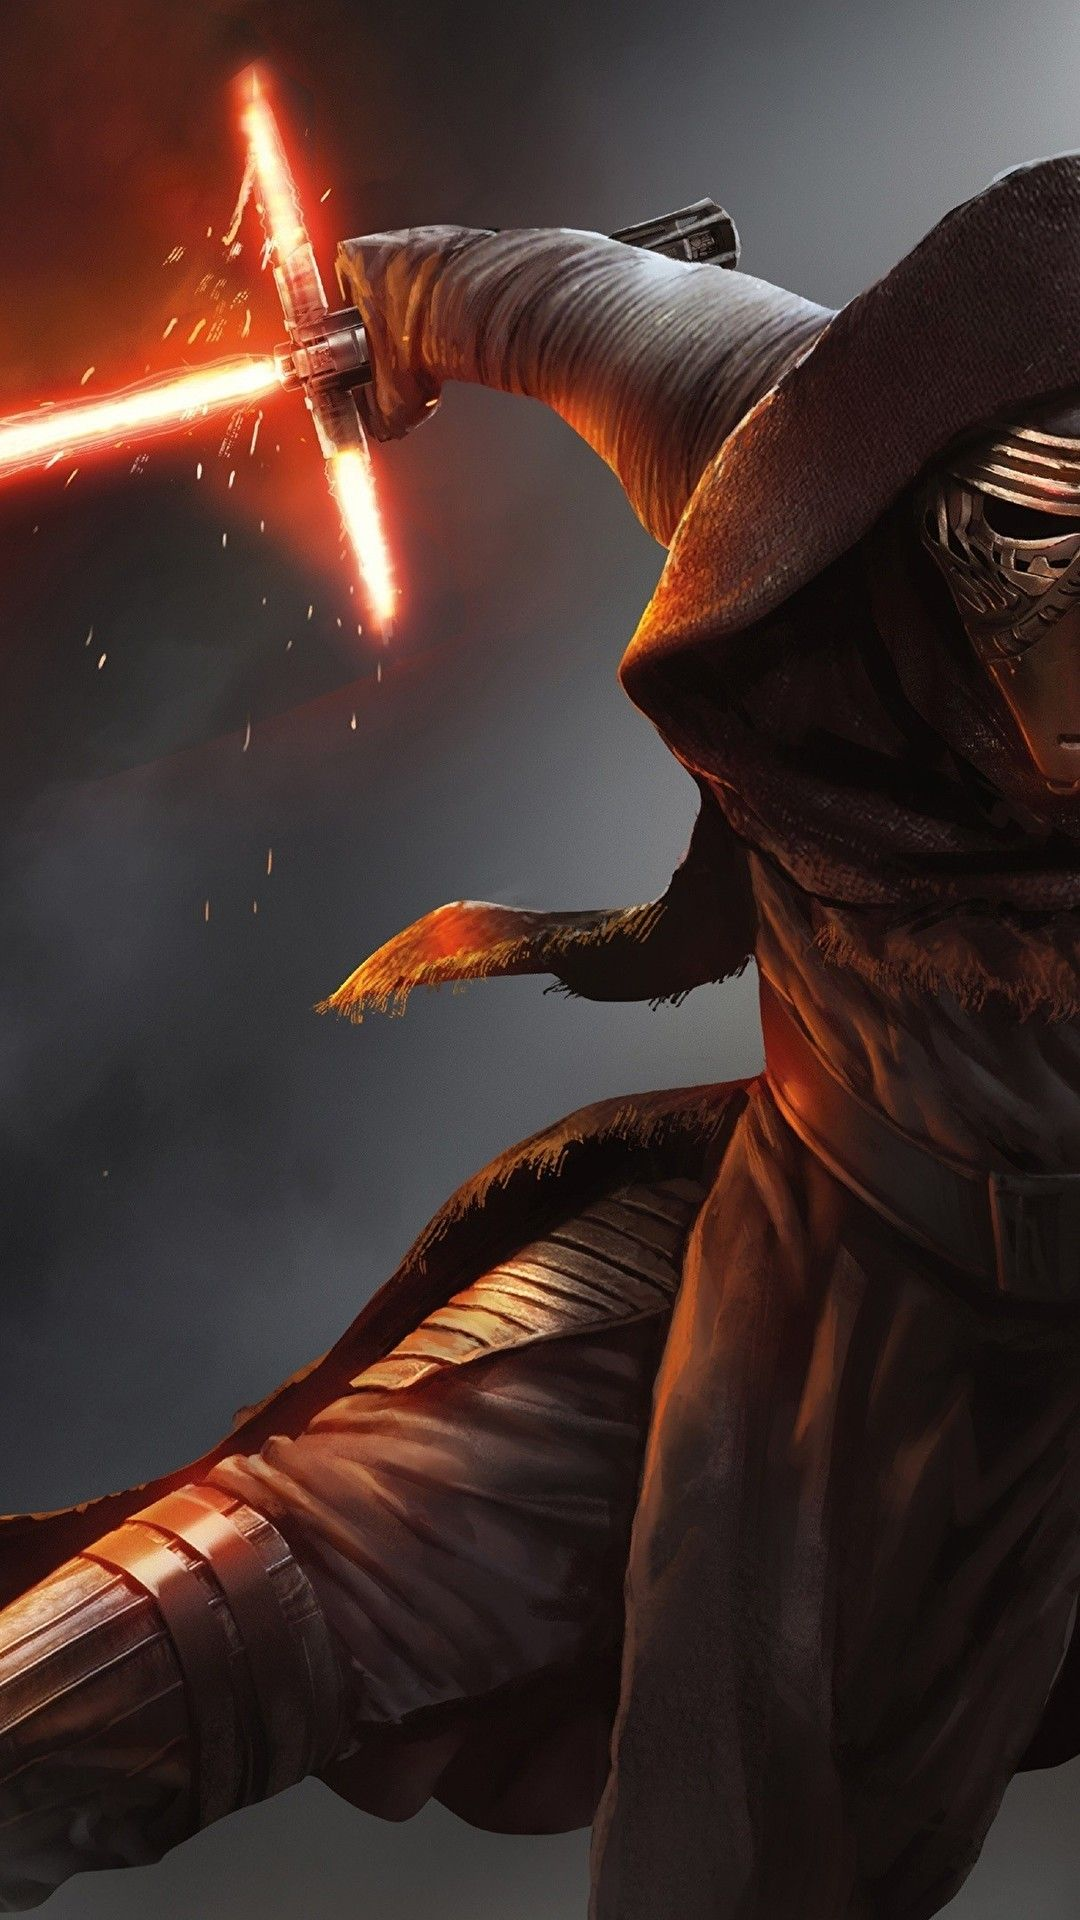 Kylo Ren Star Wars Tap to see more exciting Star Wars